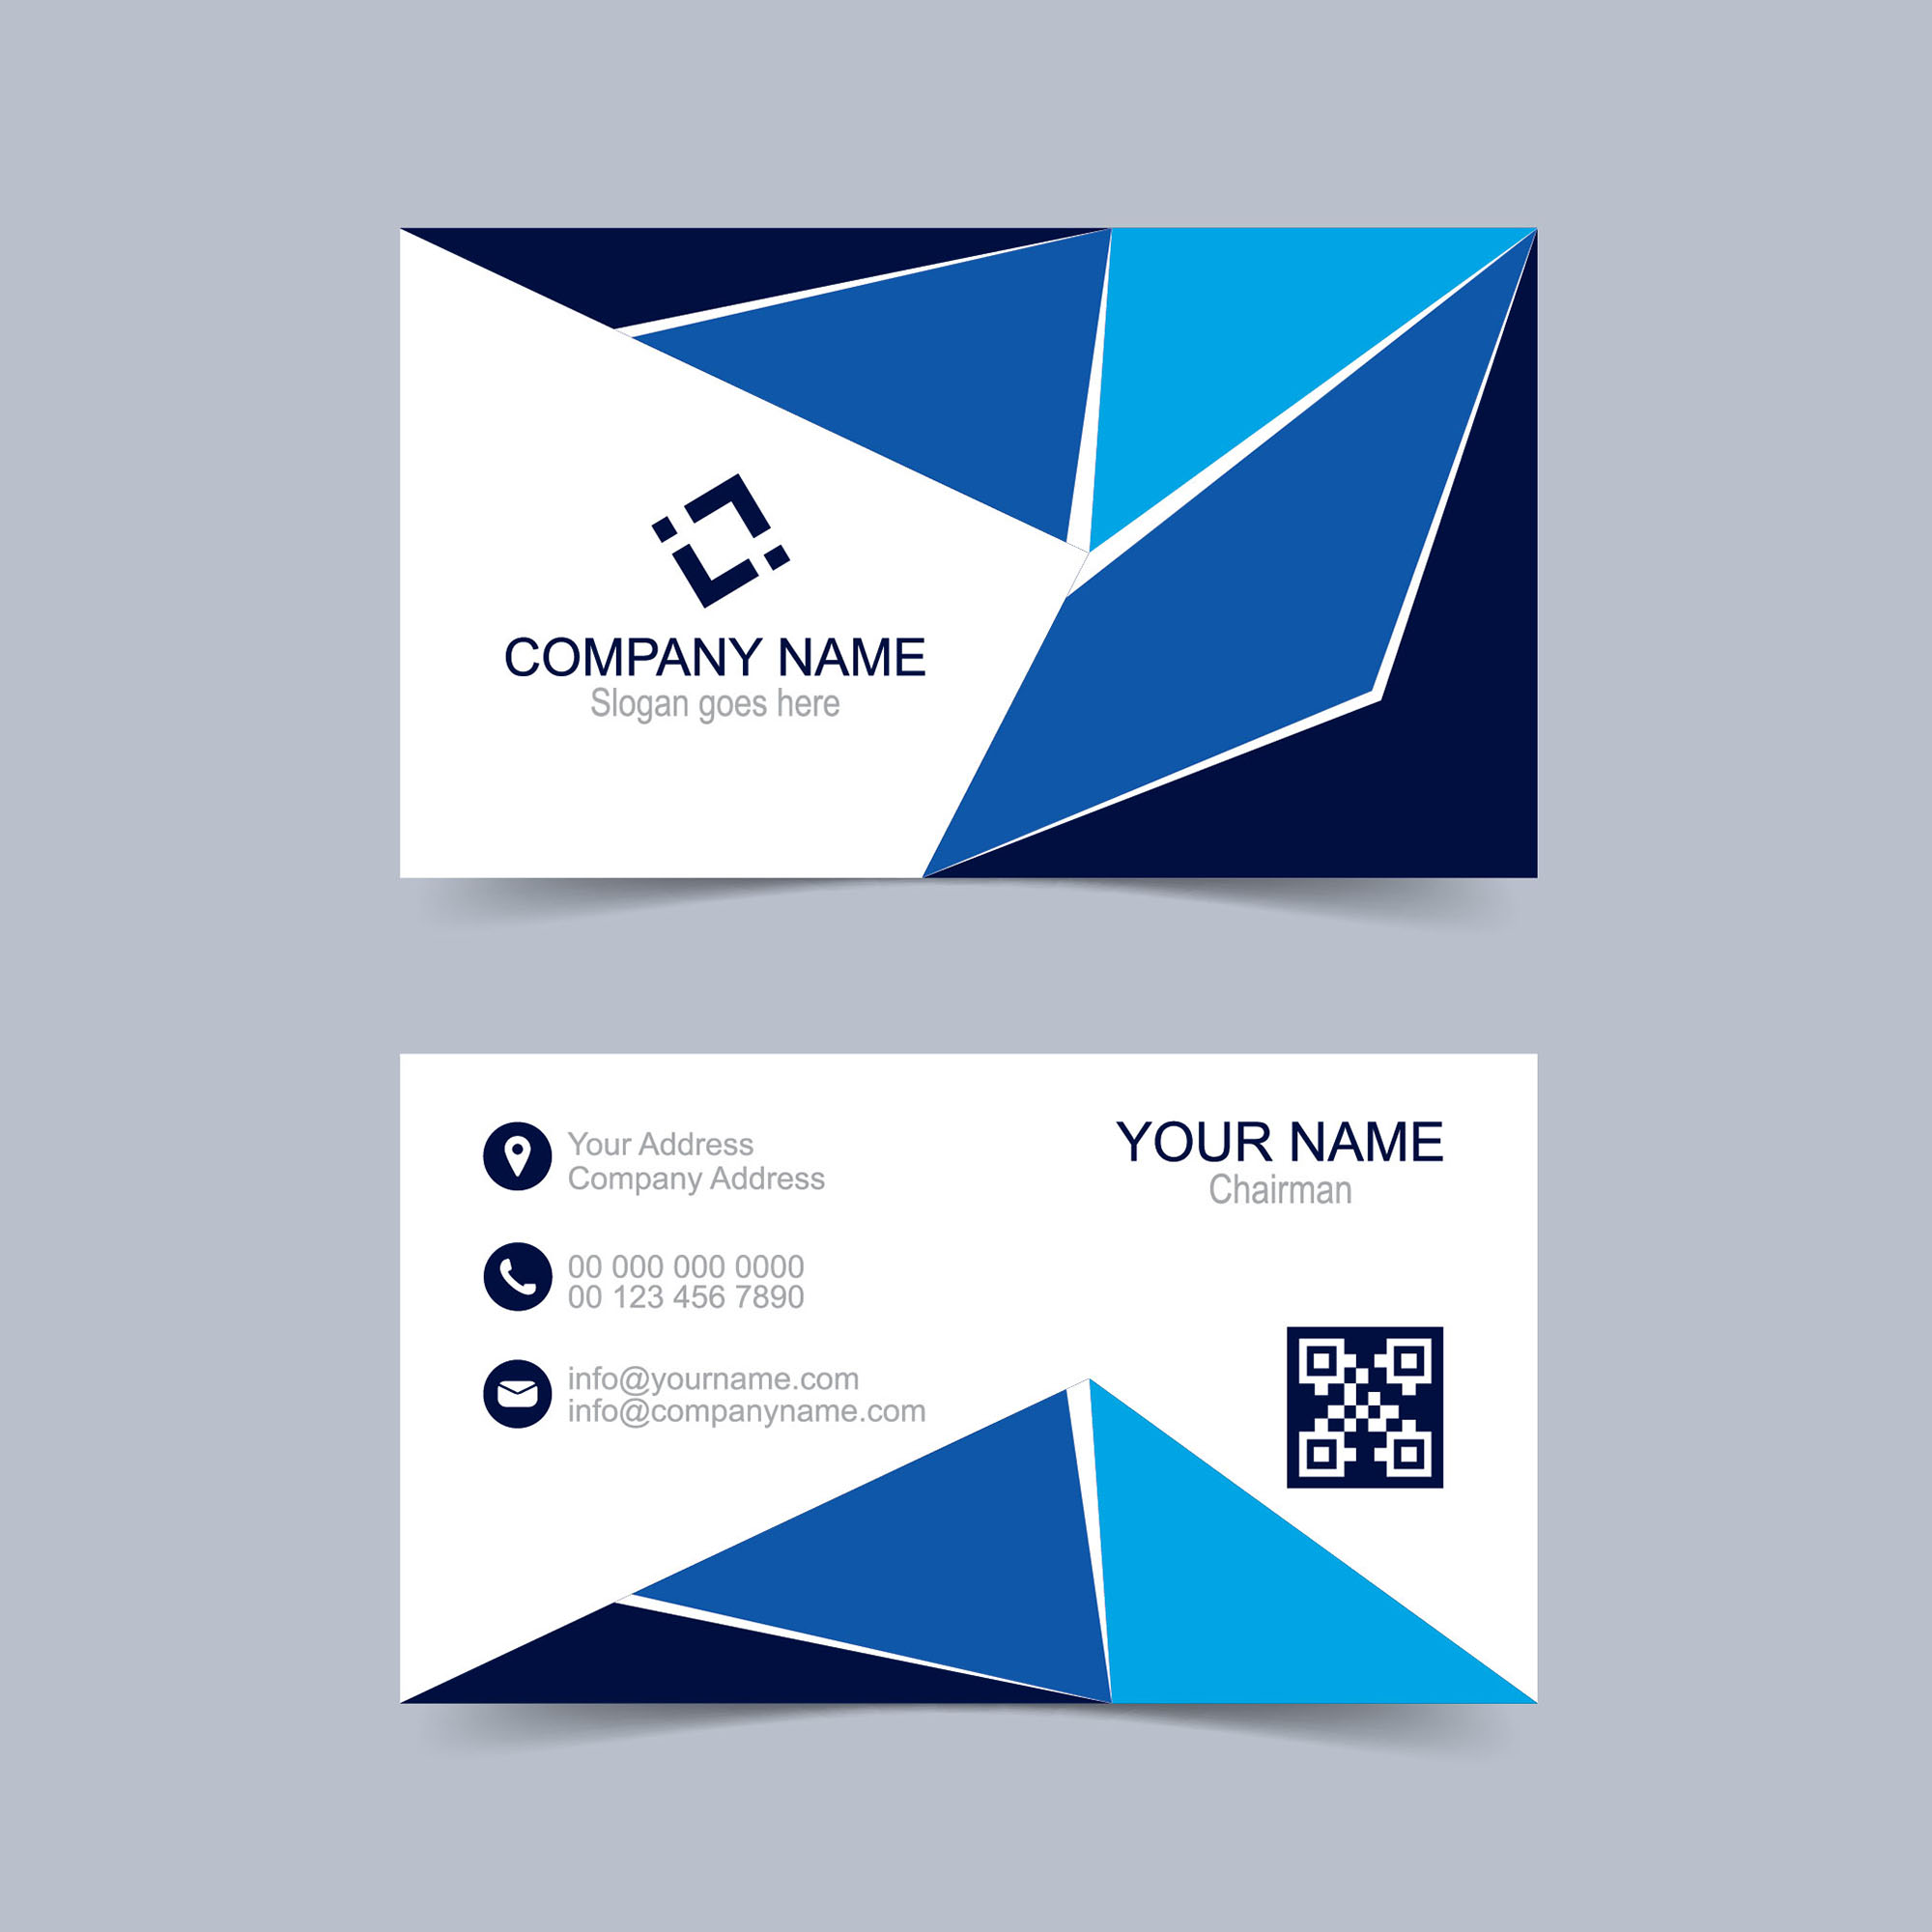 Creative Business Card Design Free Download Wisxicom